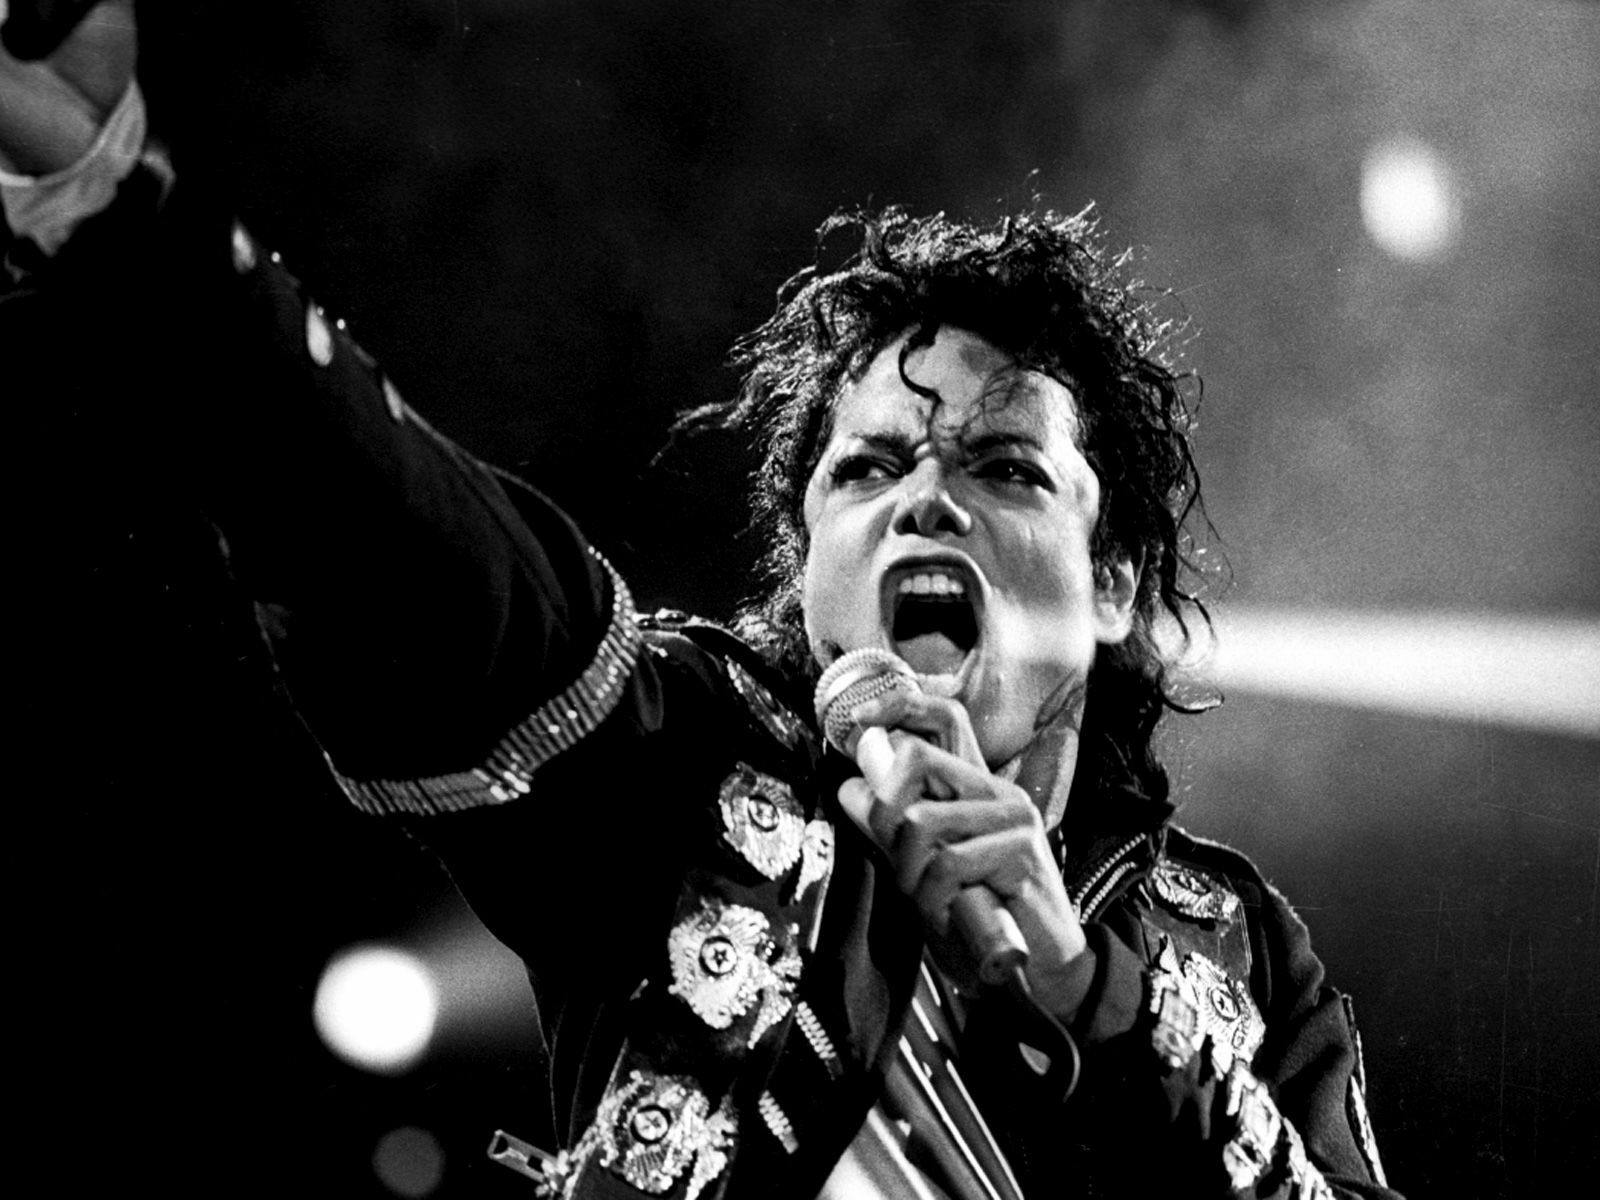 Michael Jackson Tribute at Groove: Hear All the Hits